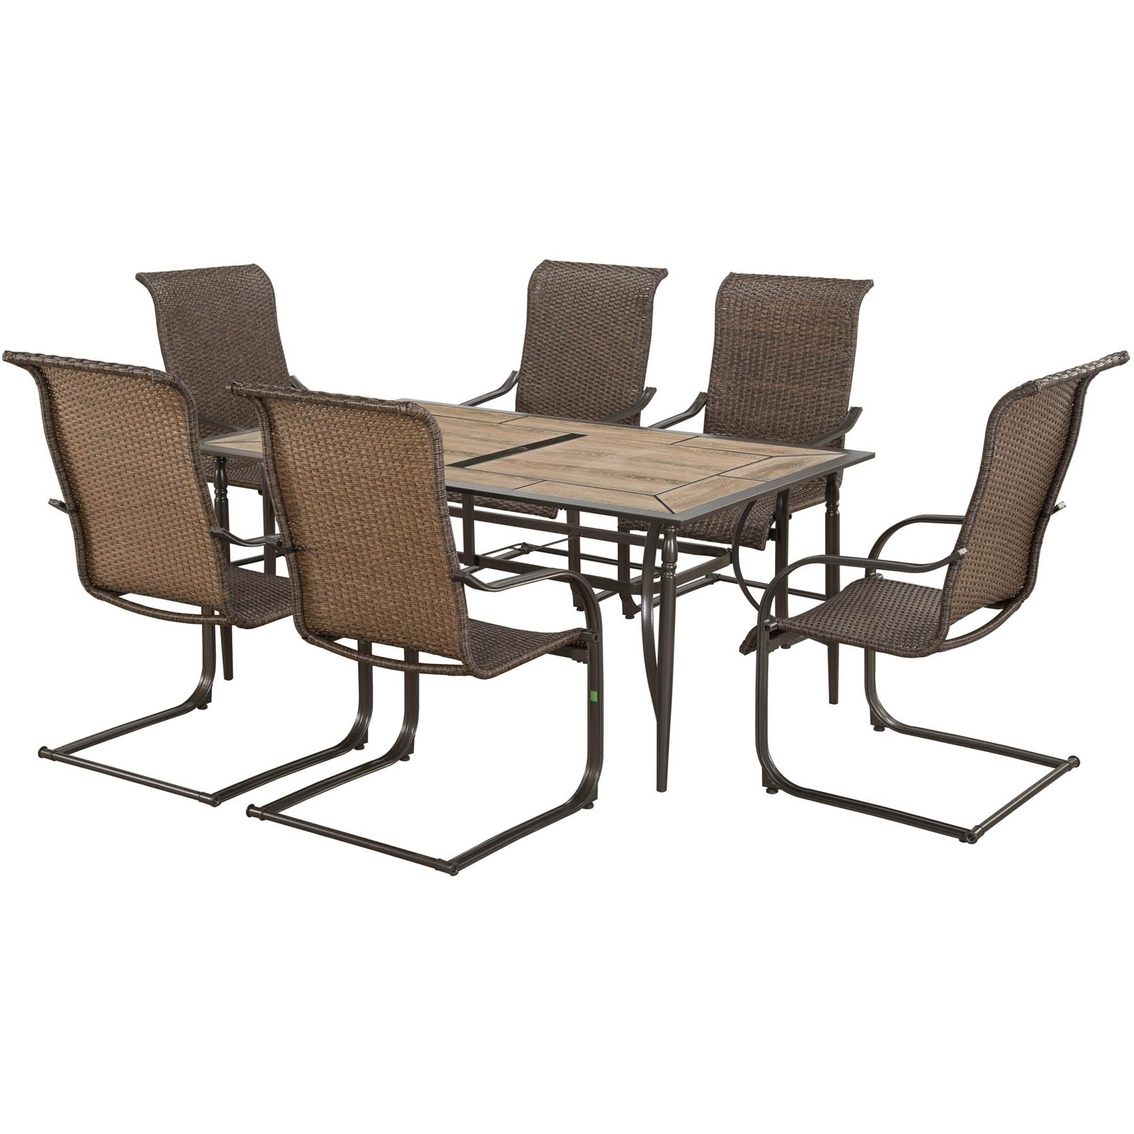 Courtyard Creations Pinehurst 7 Pc. Dining Set